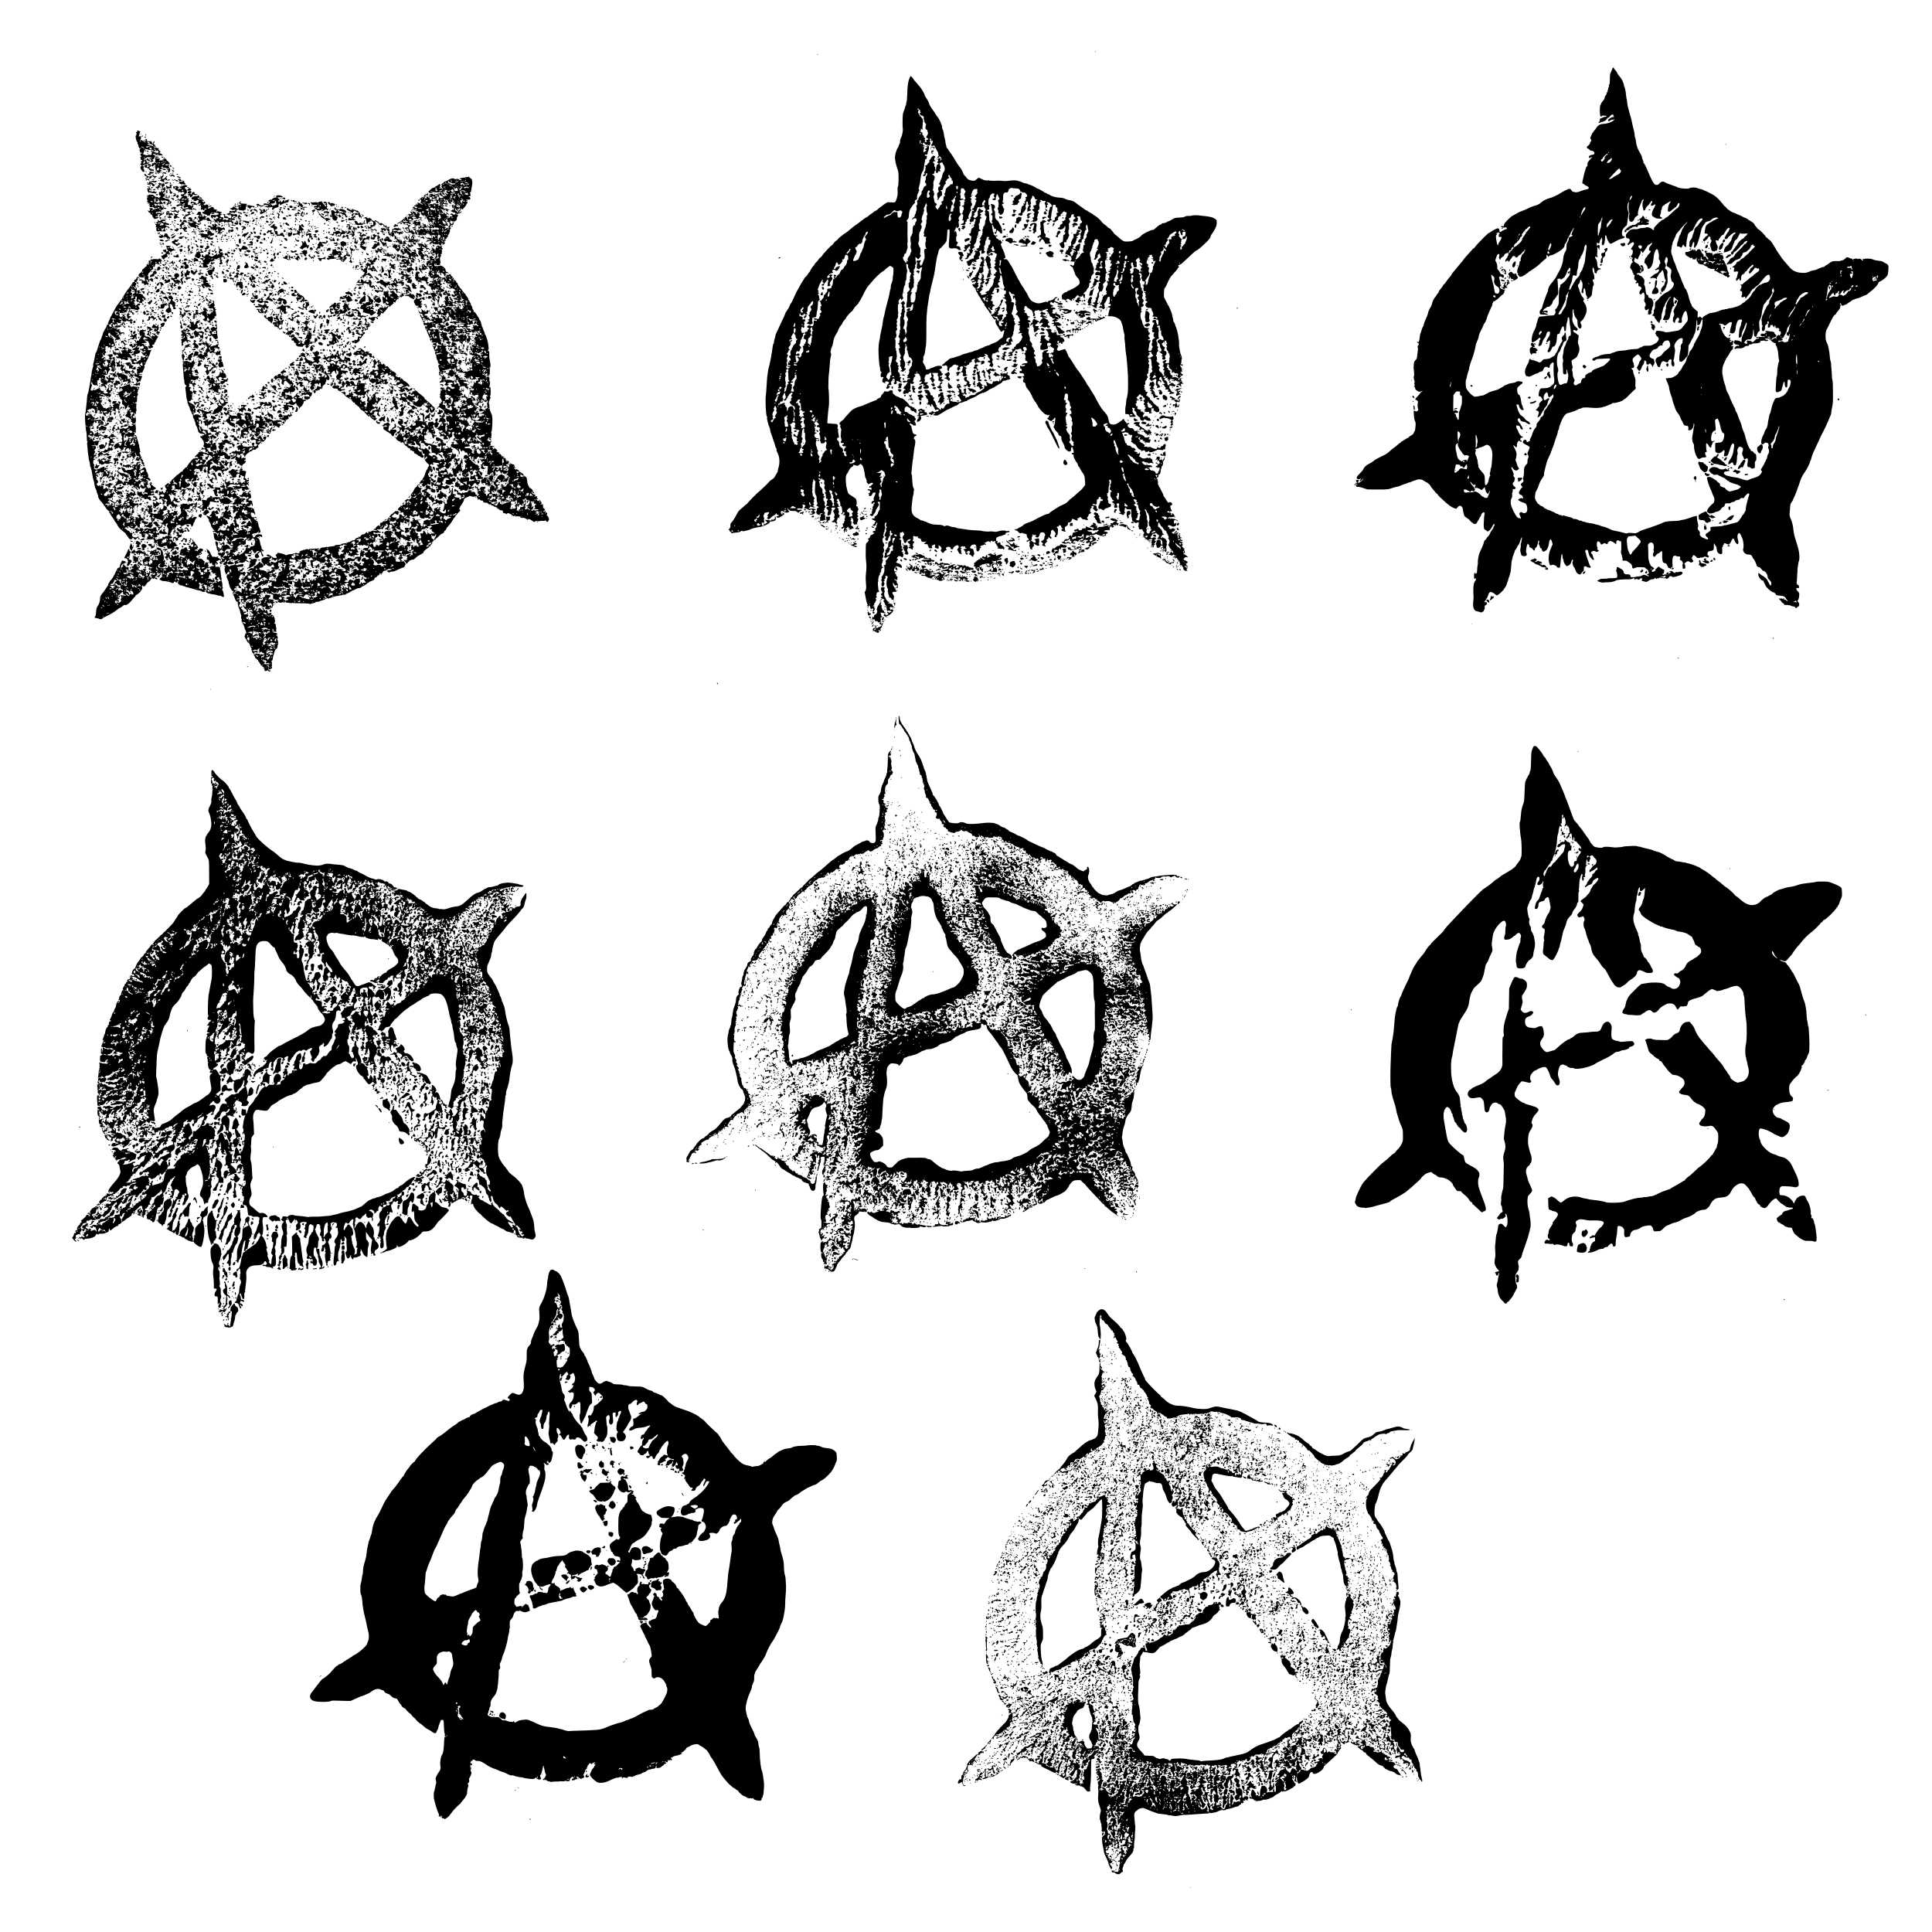 8-grunge-anarchy-symbol-cover.jpg